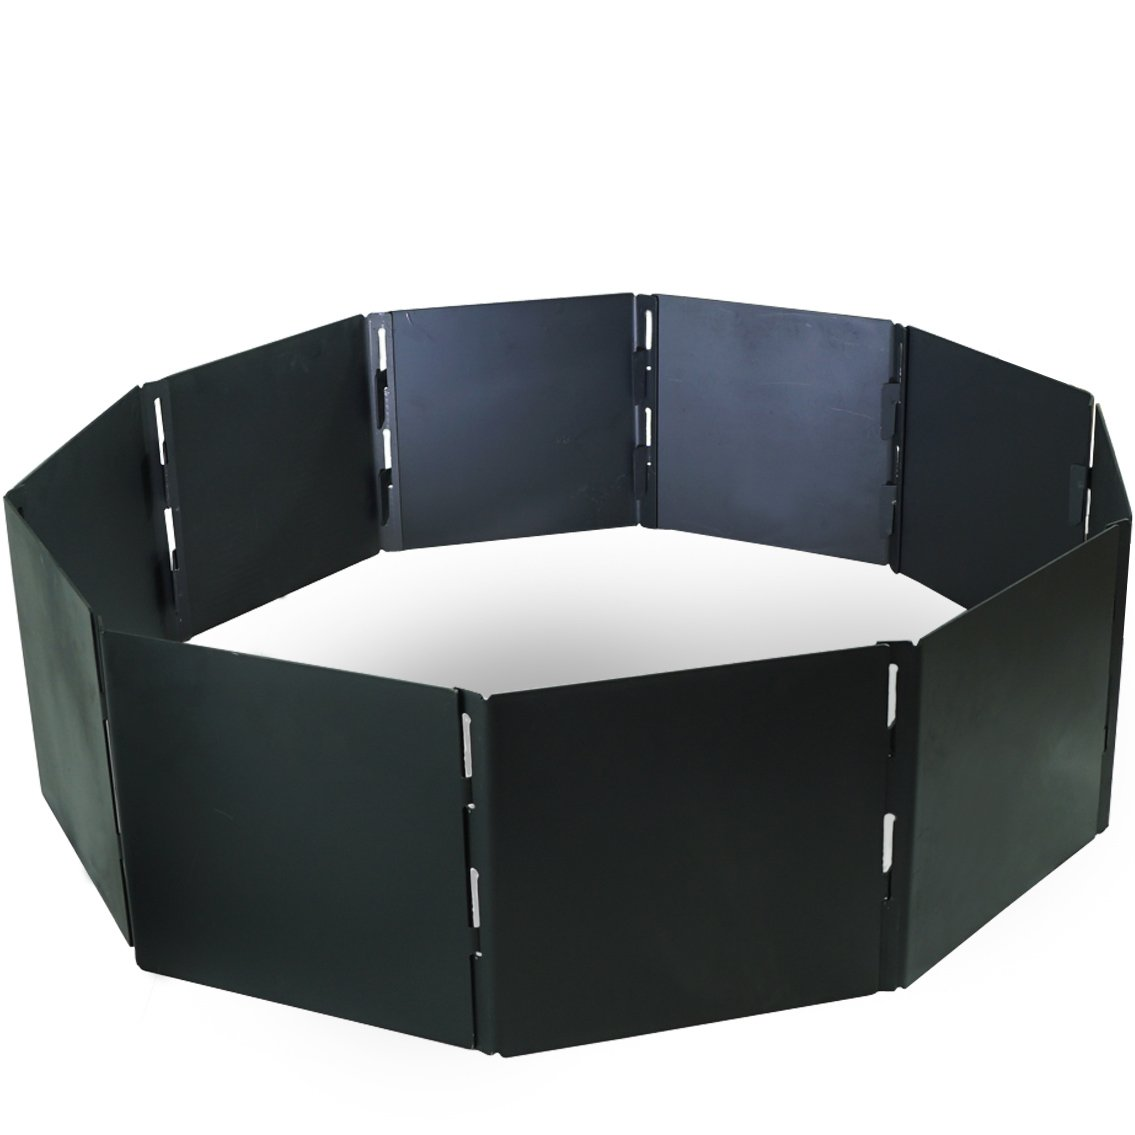 Titan Attachments Campfire Portable Fire Pit Ring 48'' Diameter 12 Panels Stackable Heavy Steel